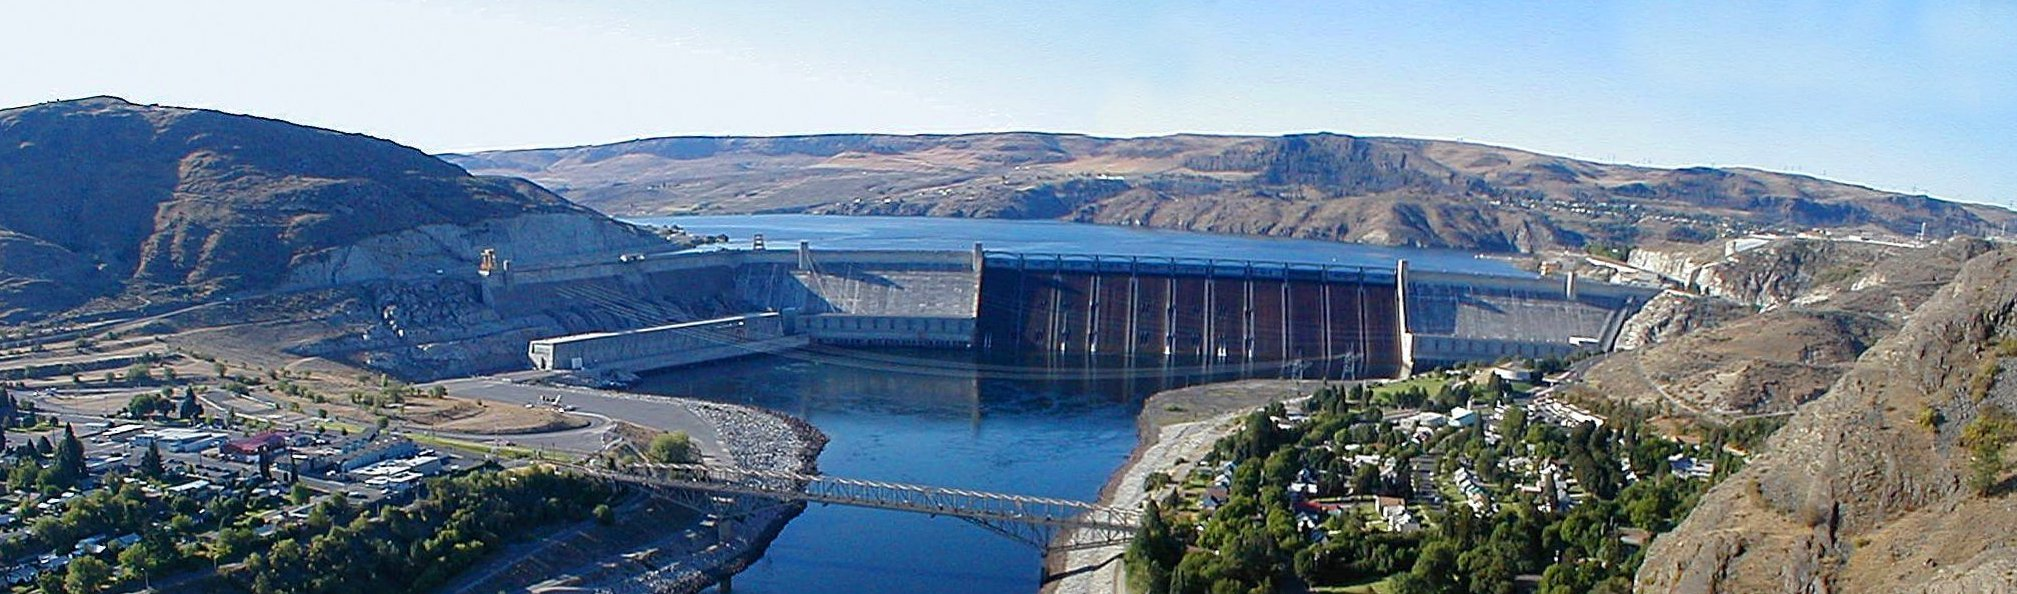 What i learned about community at the grand coulee dam wesley theres some truth to be found in the places weve been the things weve built the grand coulee is a reminder of the magnitude of community buy in publicscrutiny Gallery